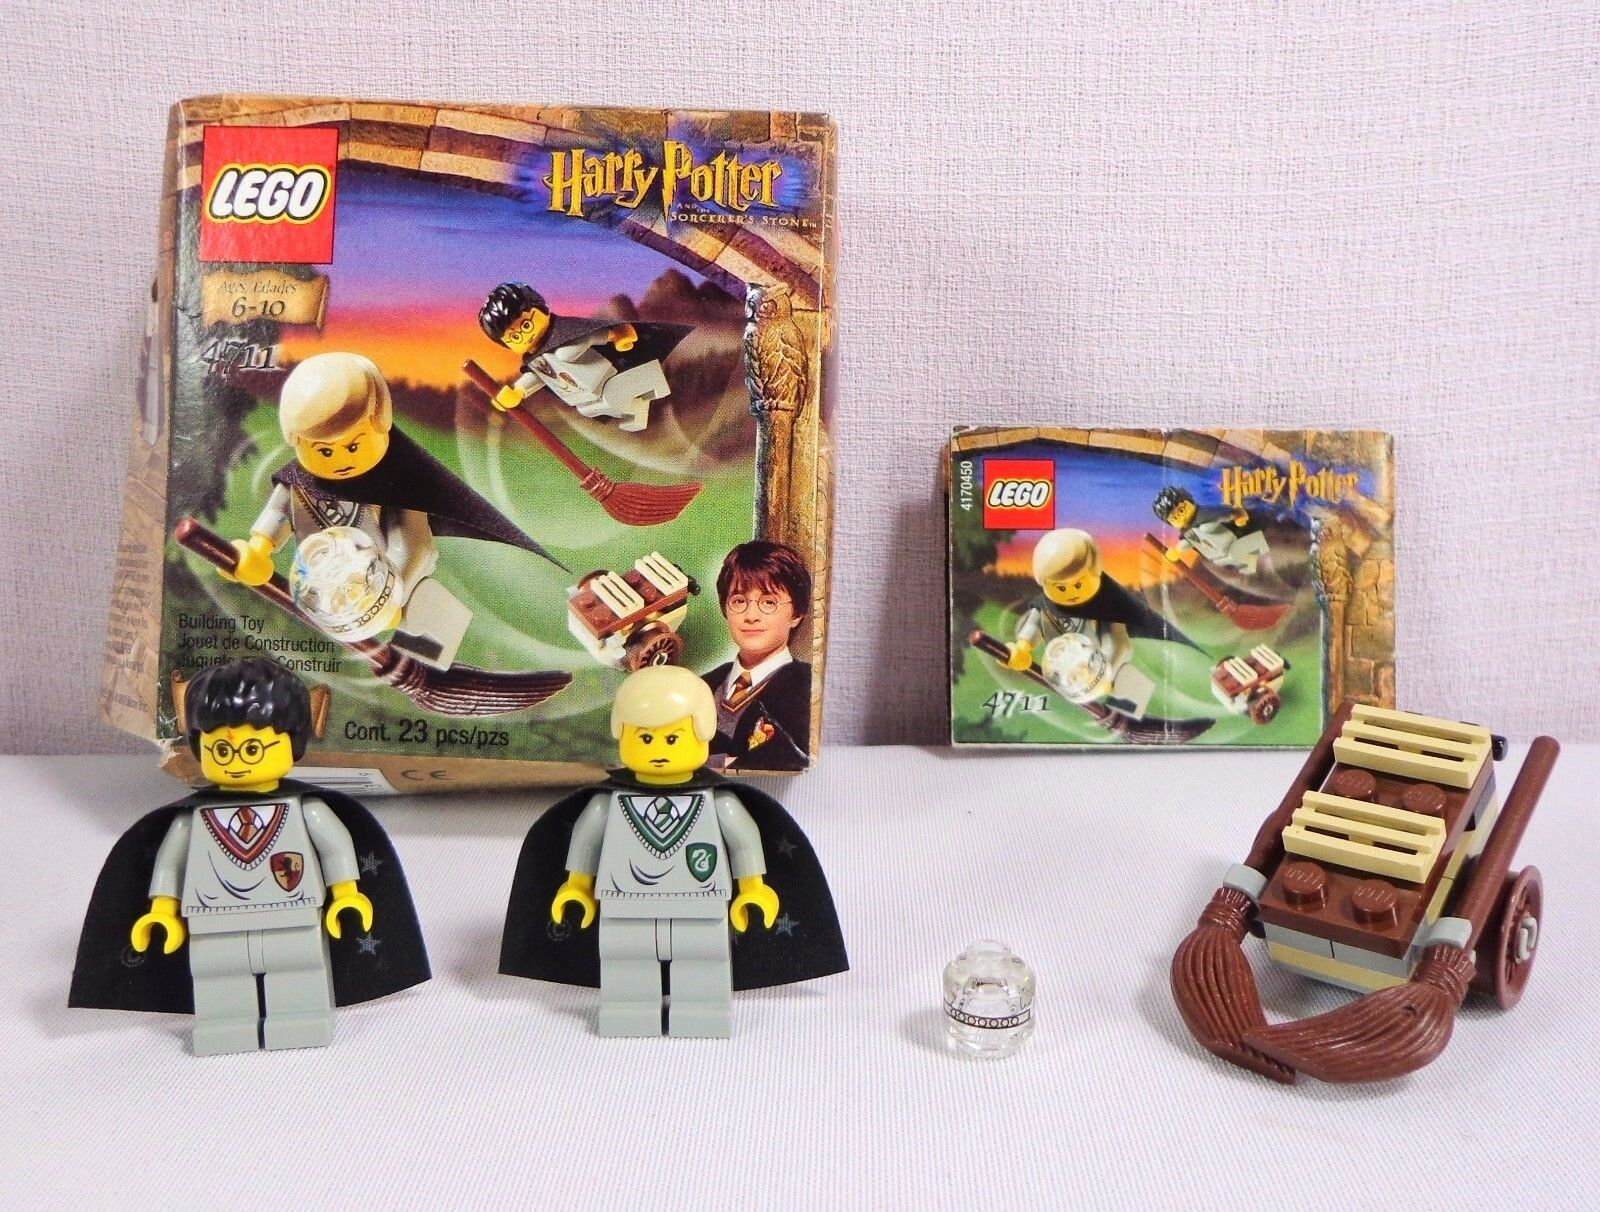 Lego Harry Potter 4711 Set Flying Lesson Sorcerers Stone Draco Malfoy with Box